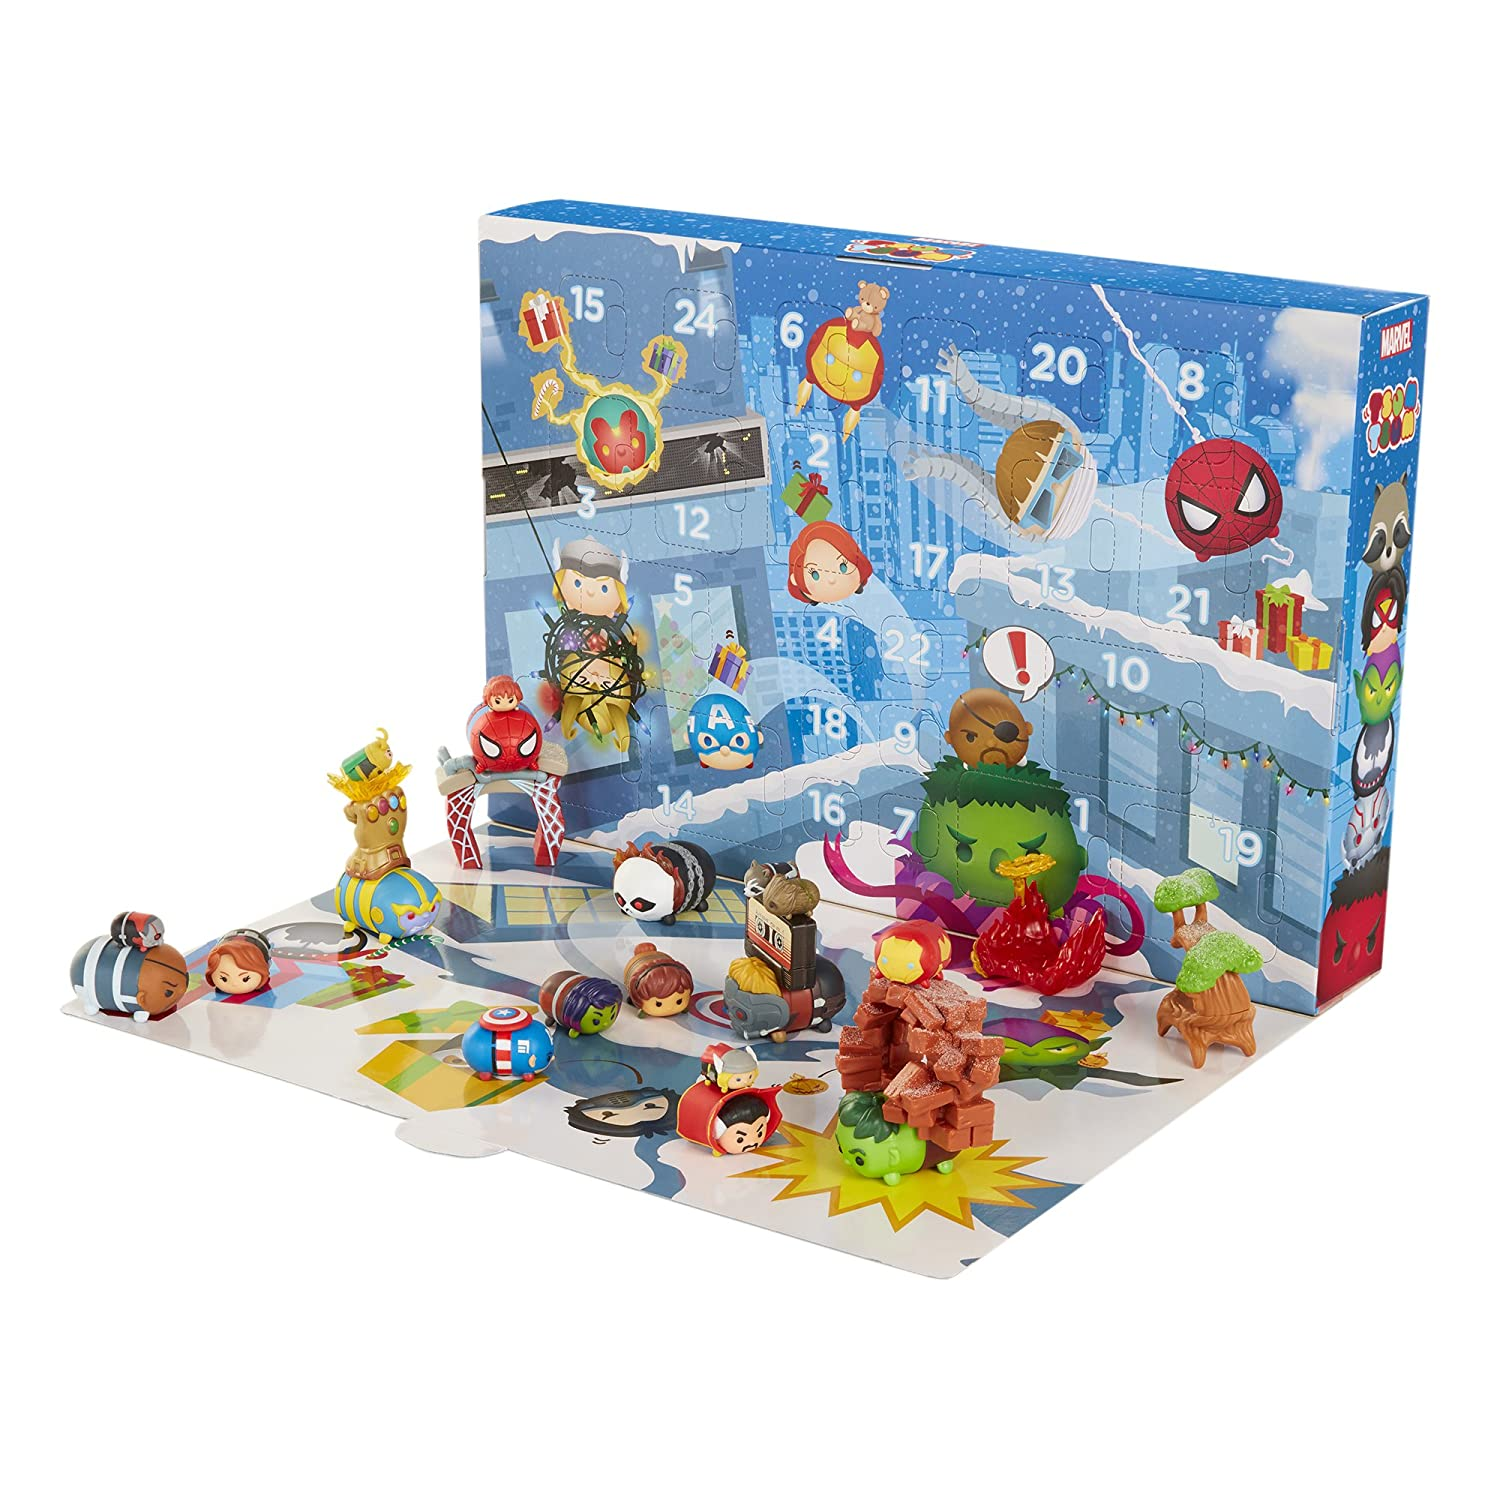 Tsum Tsum Marvel Countdown to Christmas Advent Calendar Playset Jakks Pacific 06119